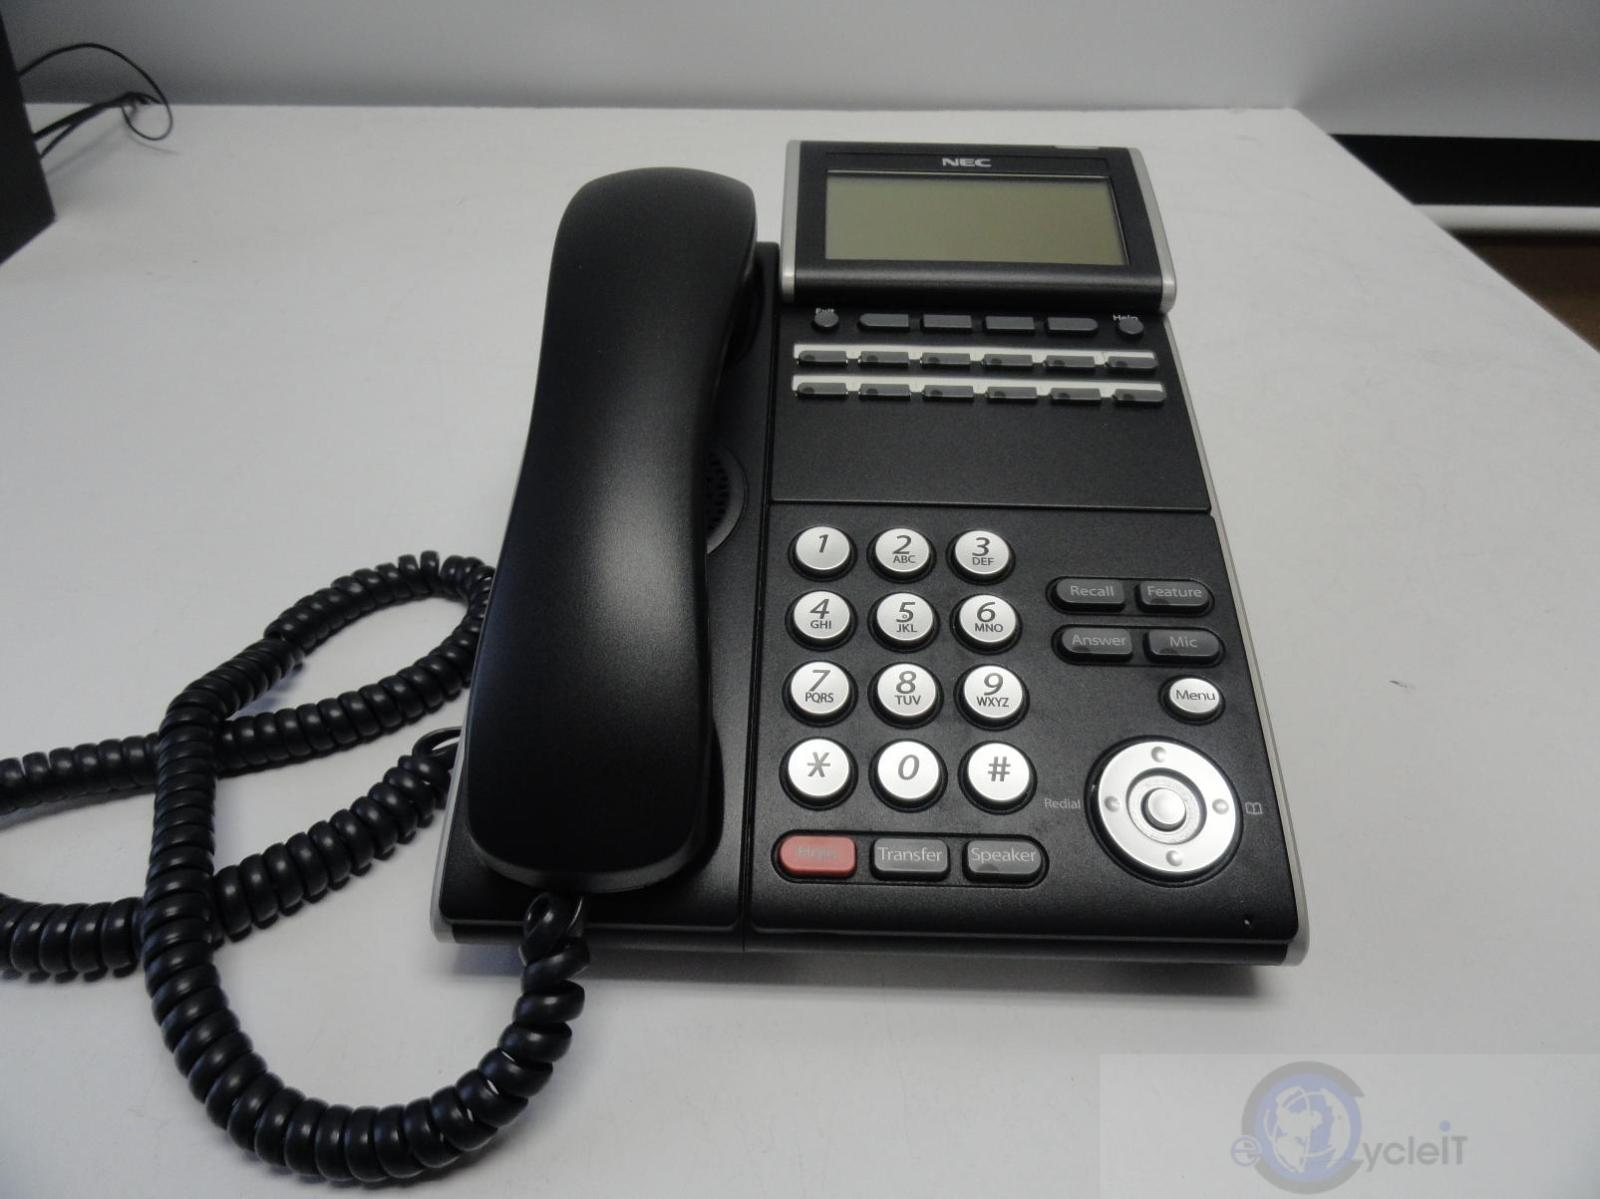 nec phone diagram 17 wiring diagram images wiring sv8300 pc programming manual Command Manual SV8300